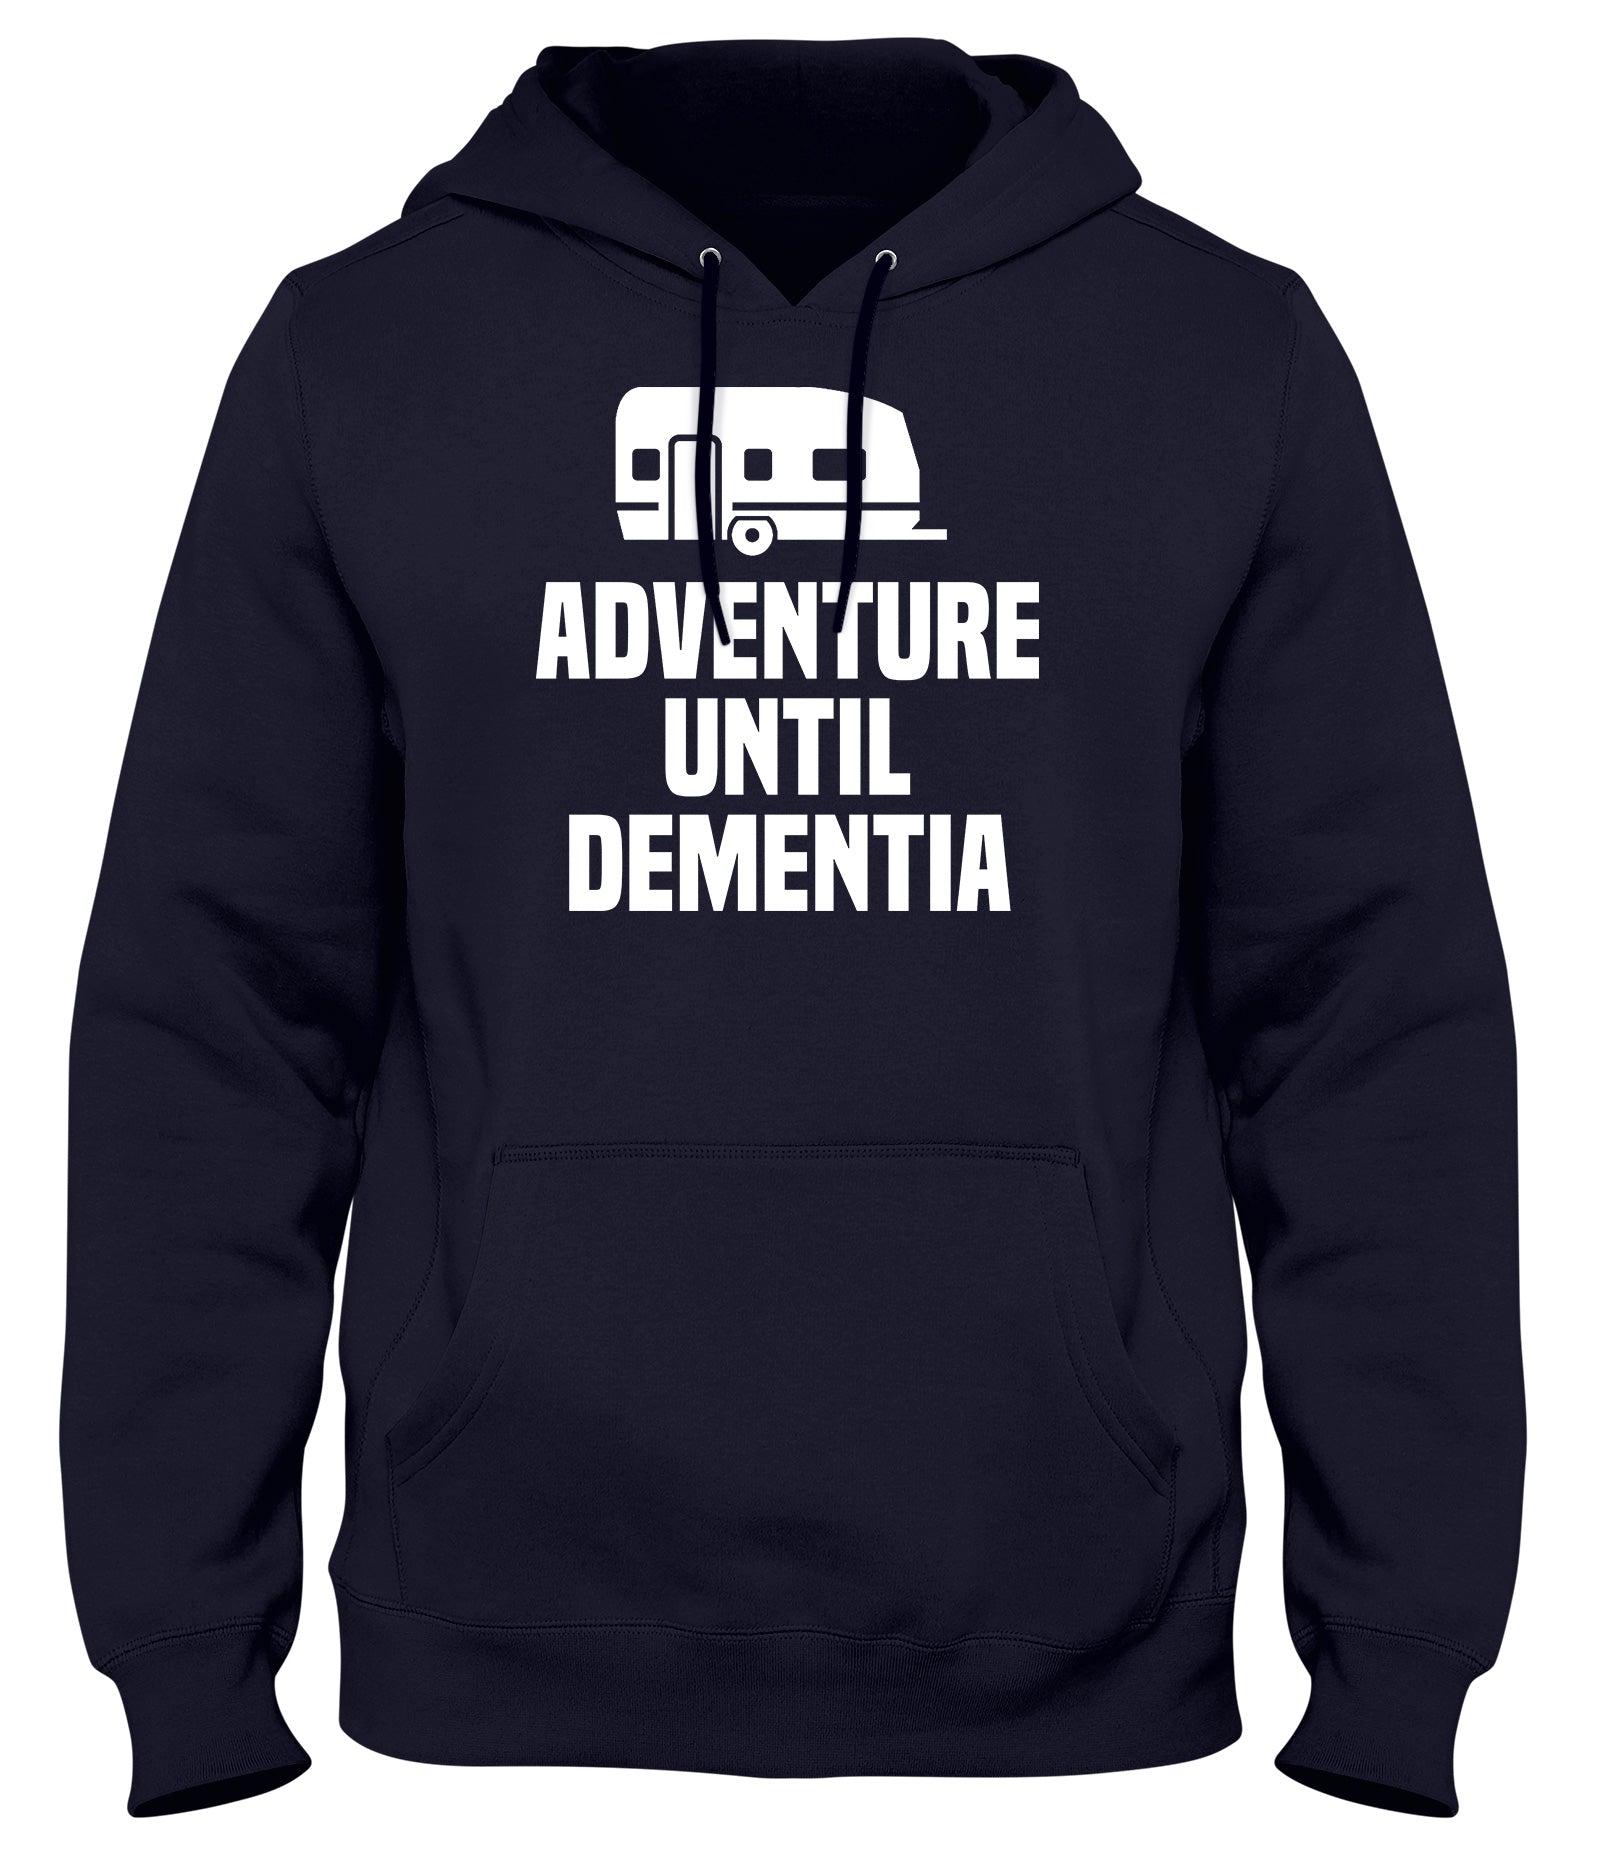 ADVENTURE UNTIL DEMENTIA MENS WOMENS LADIES UNISEX FUNNY SLOGAN HOODIE